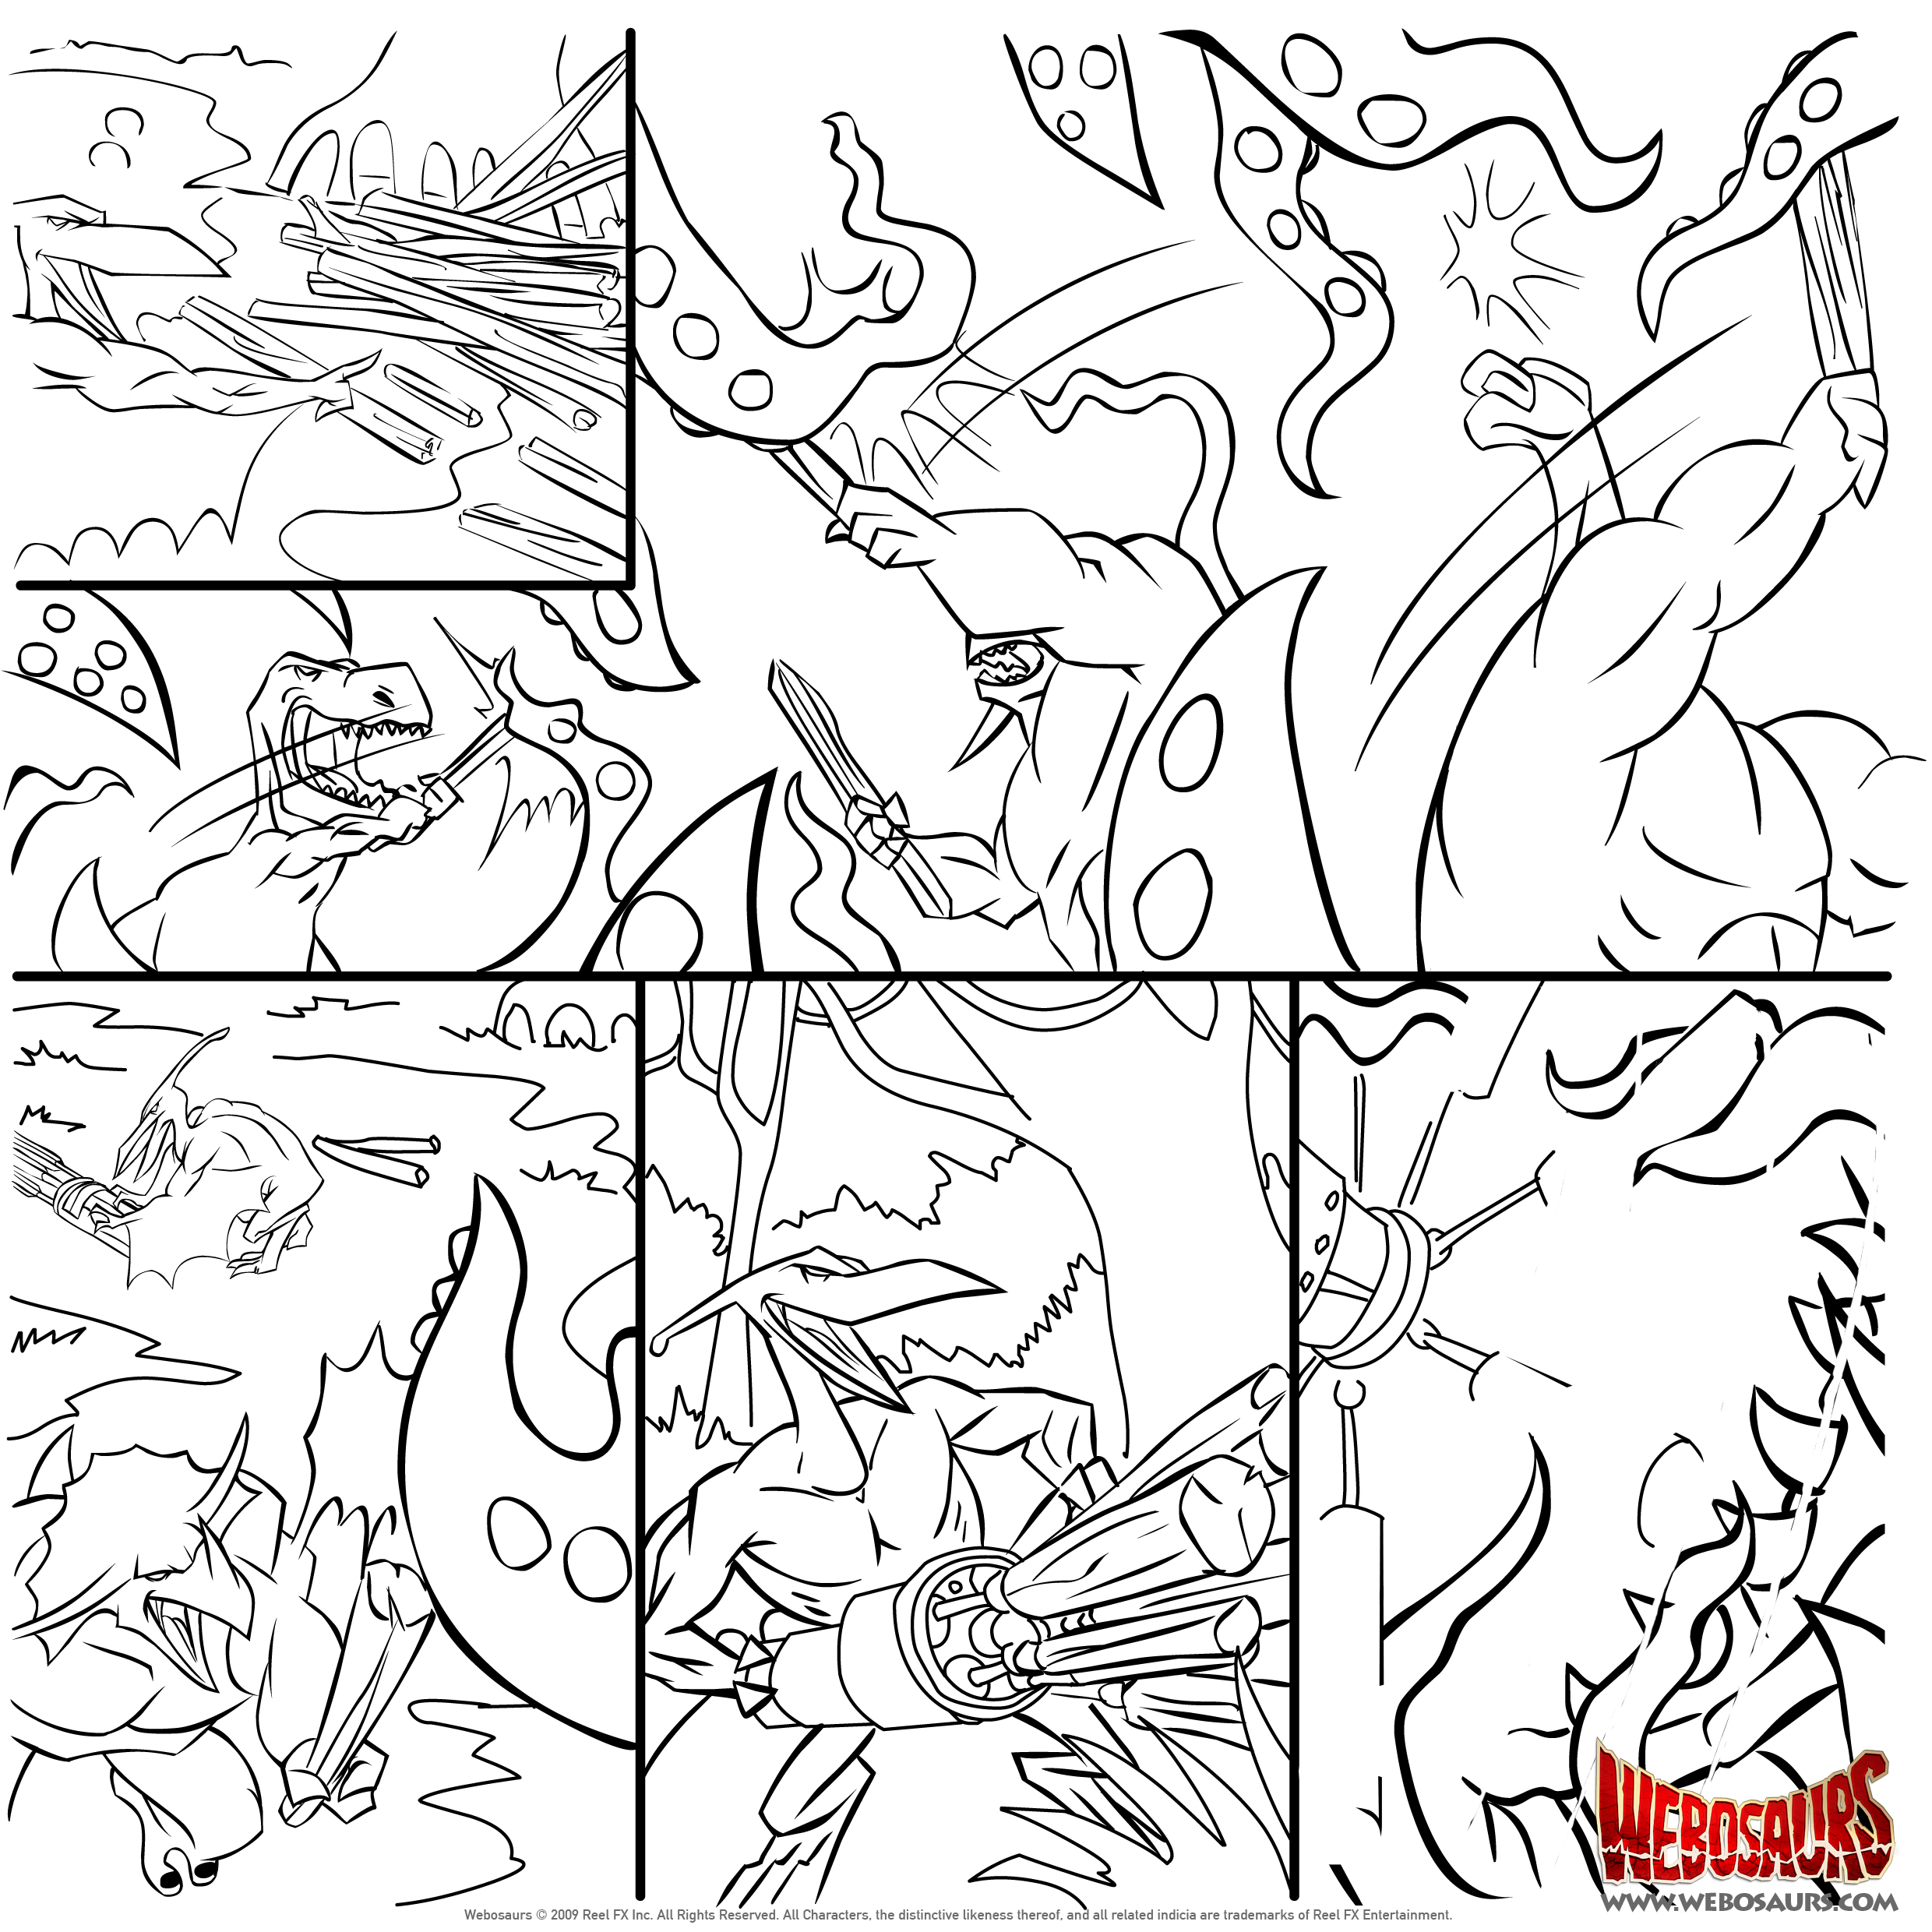 Annabeth Percy Jackson Coloring Pages Coloring Pages